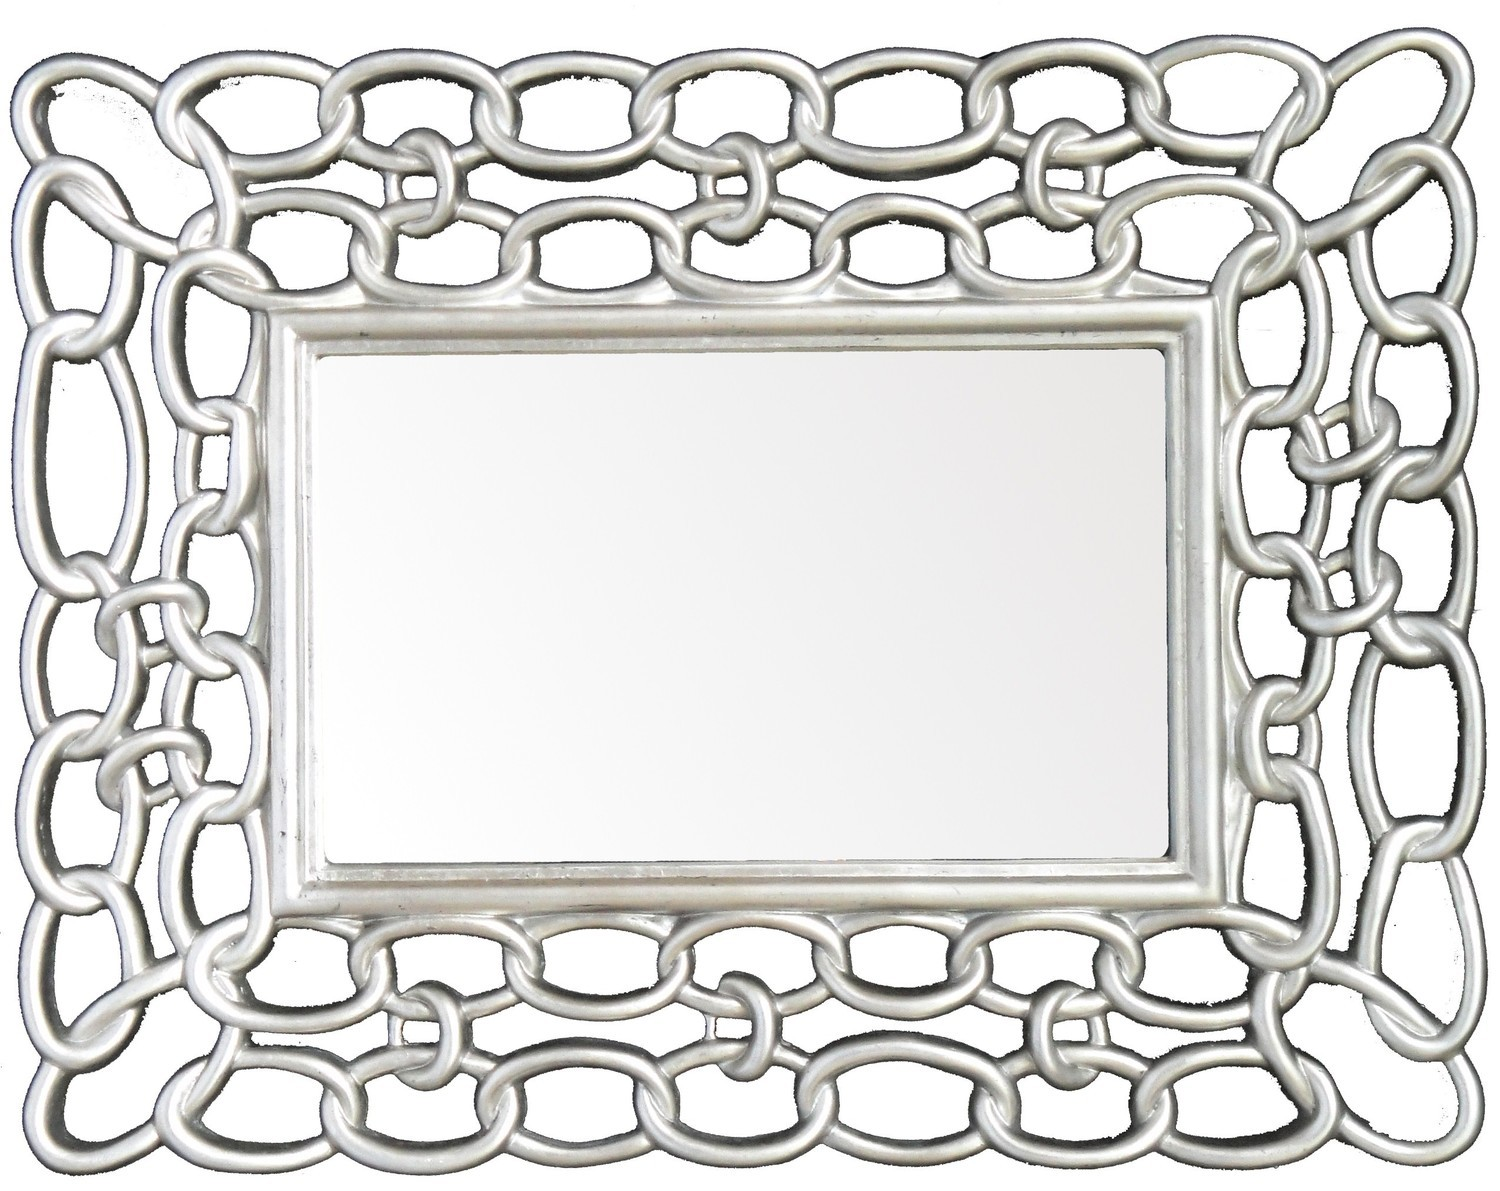 CFO66 Silver chain framed contemporary mirror